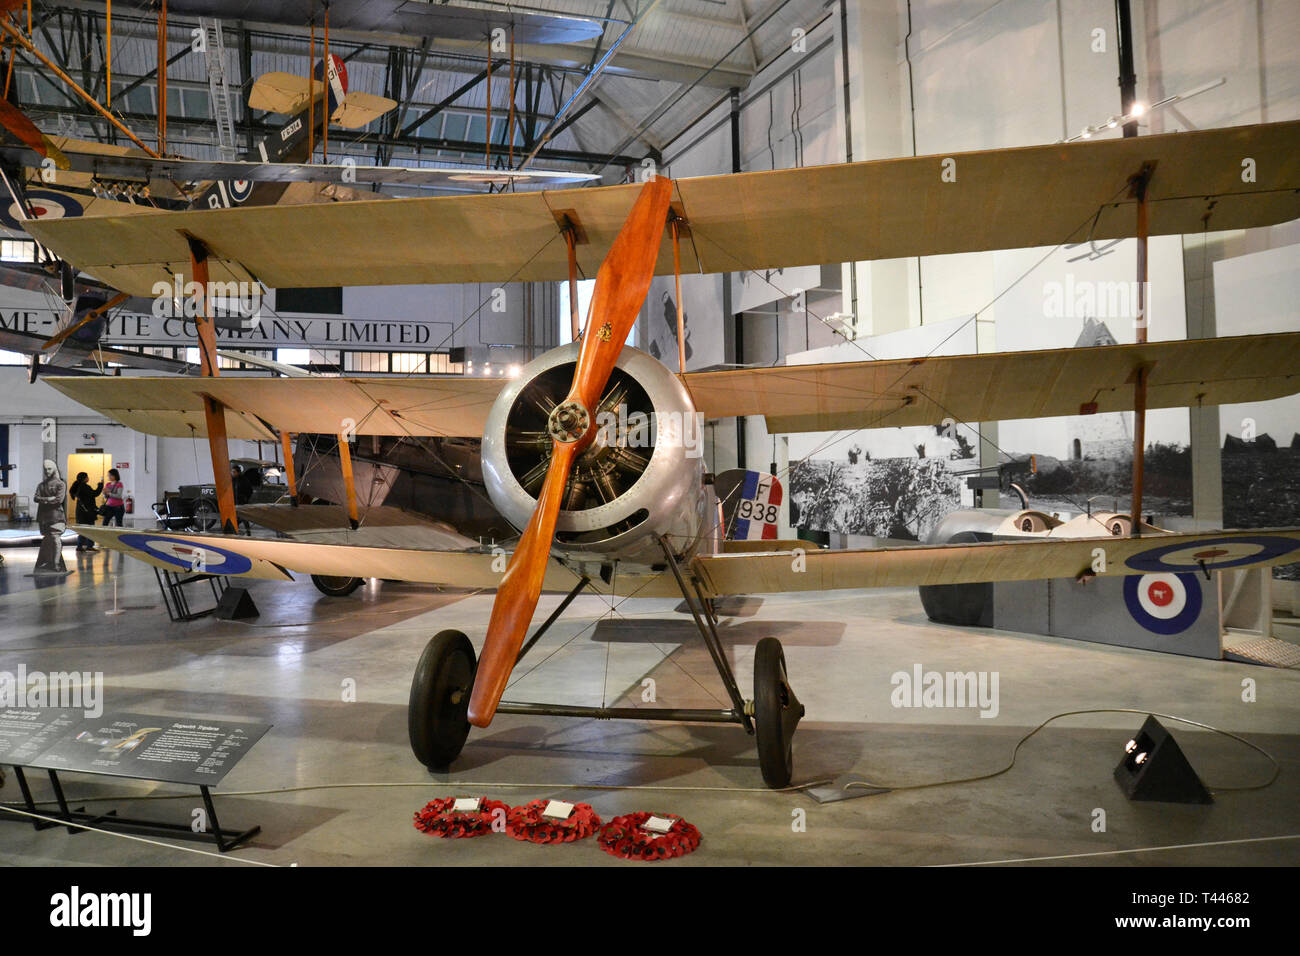 Sopwith Triplane from WWI, at the RAF Museum, London, UK. 1916-1918 Stock Photo